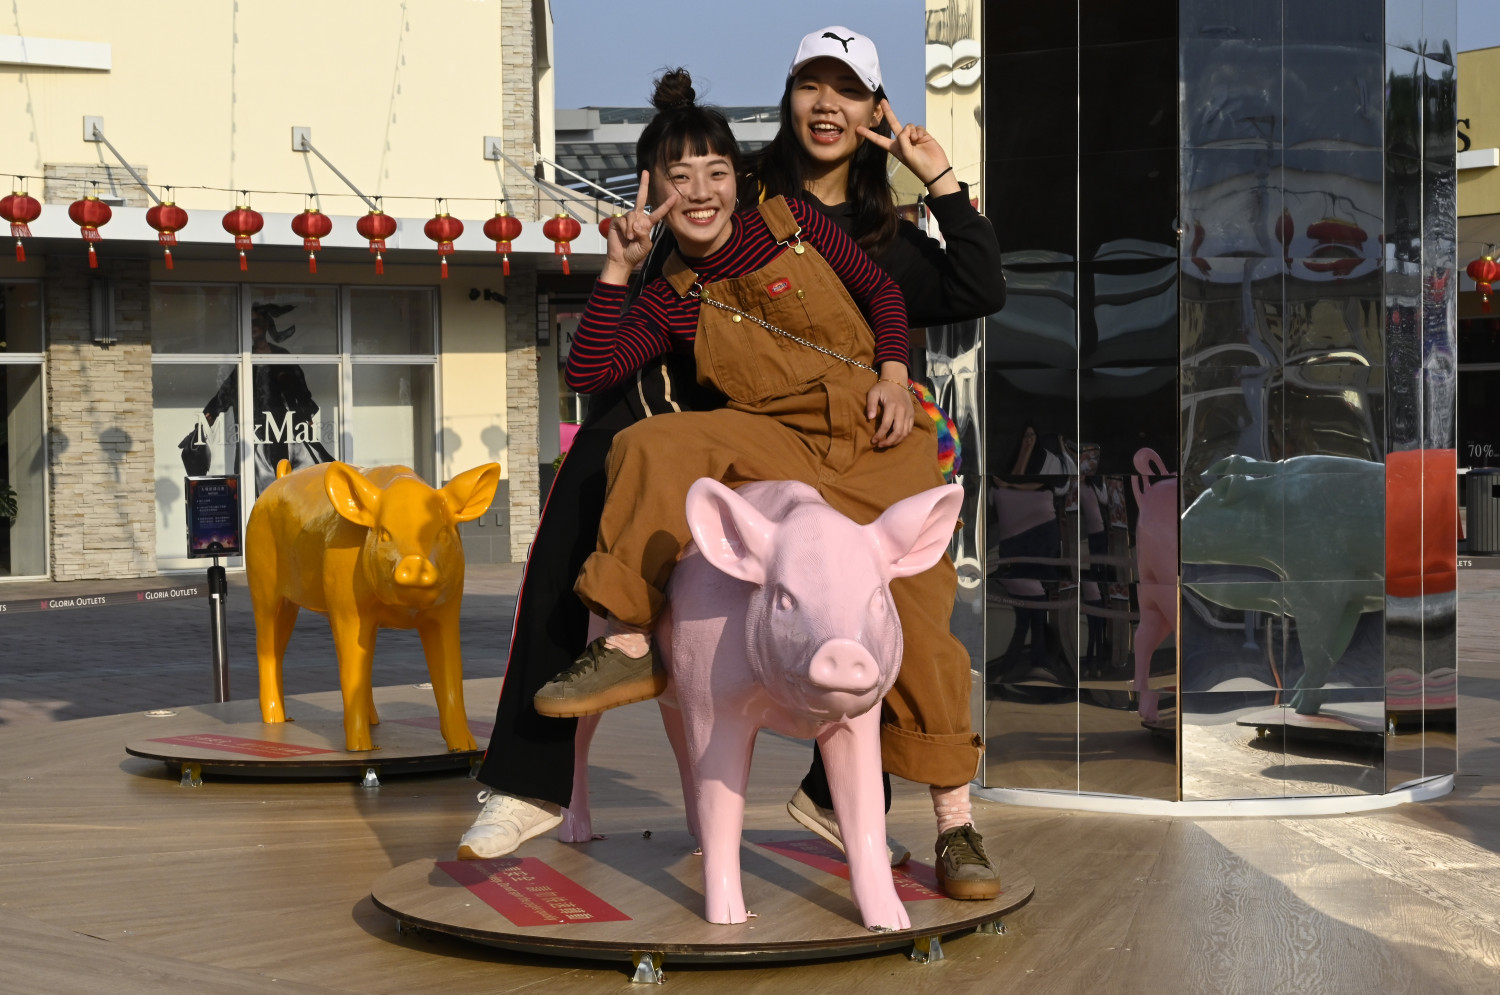 Pig-shaped sculptures for Chinese New Year